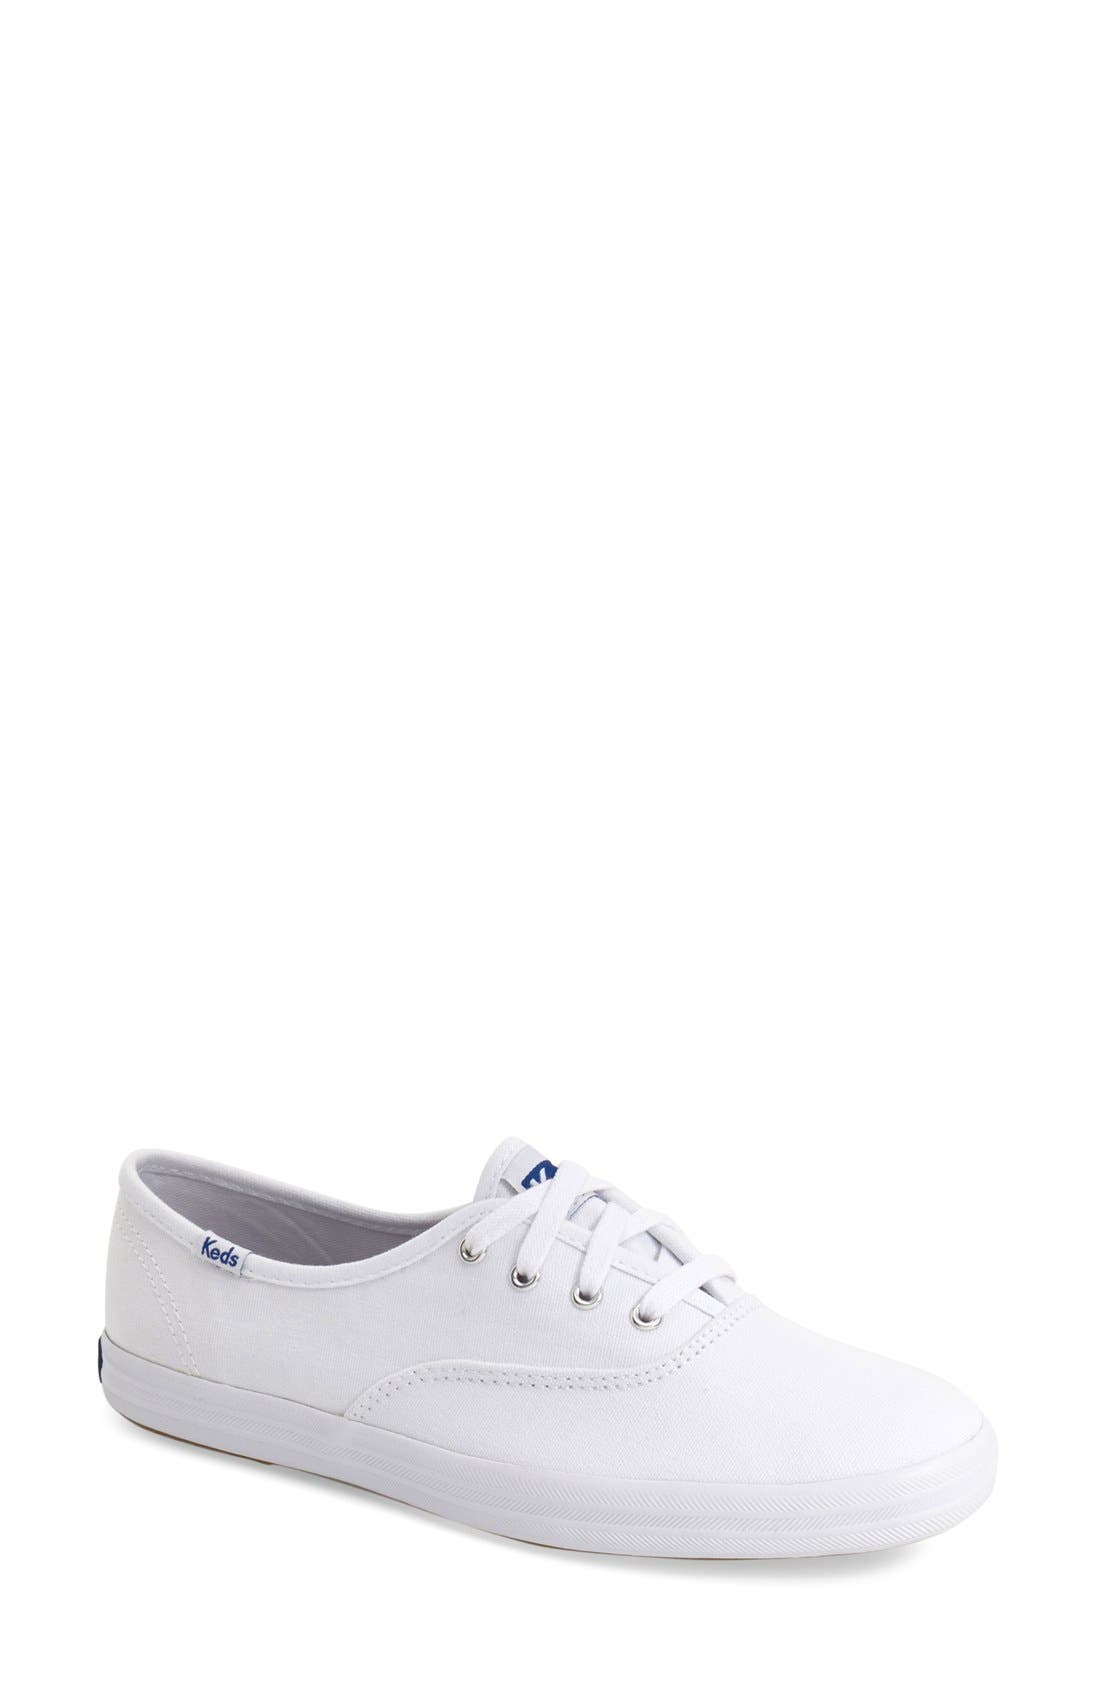 Main Image - Keds® 'Champion' Canvas Sneaker (Women)